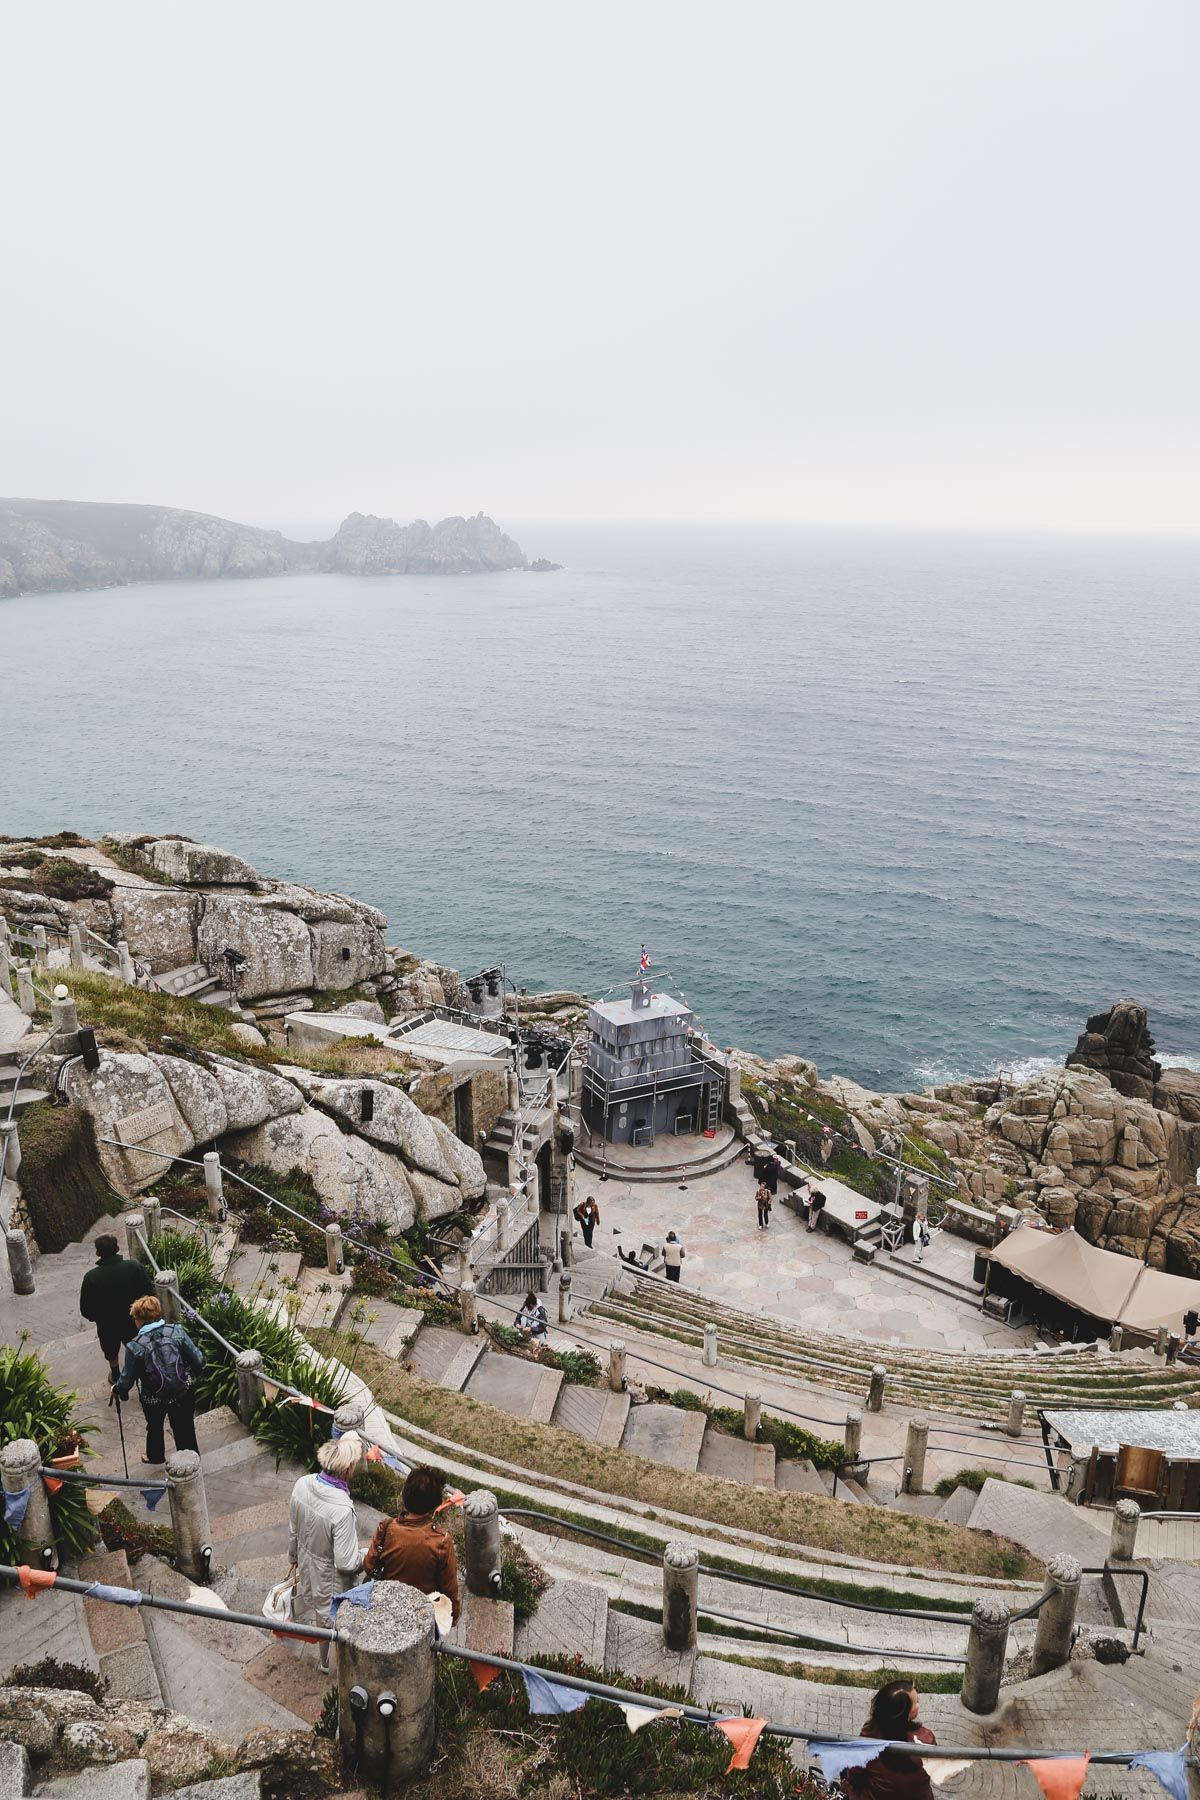 Minack Theatre The Theater by the Sea in Cornwall